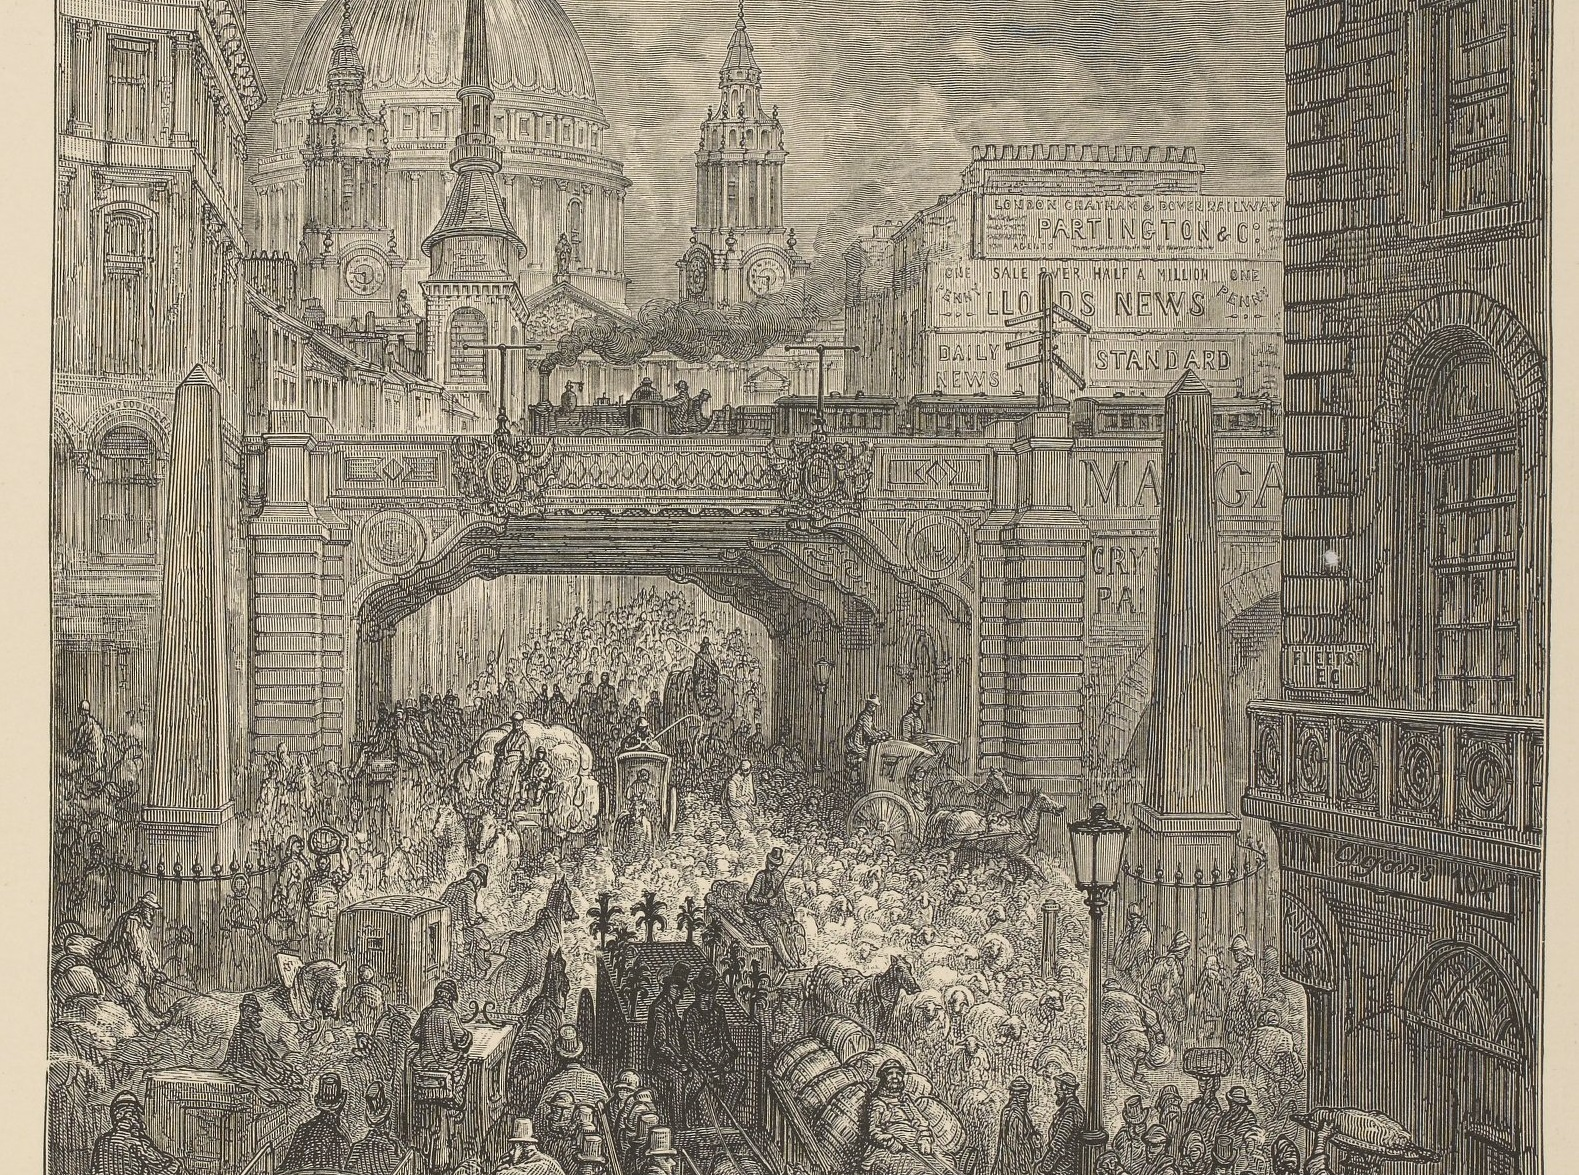 Le londres fantastique de gustave dor presse retronews bnf for Chambre de commerce francaise a londres